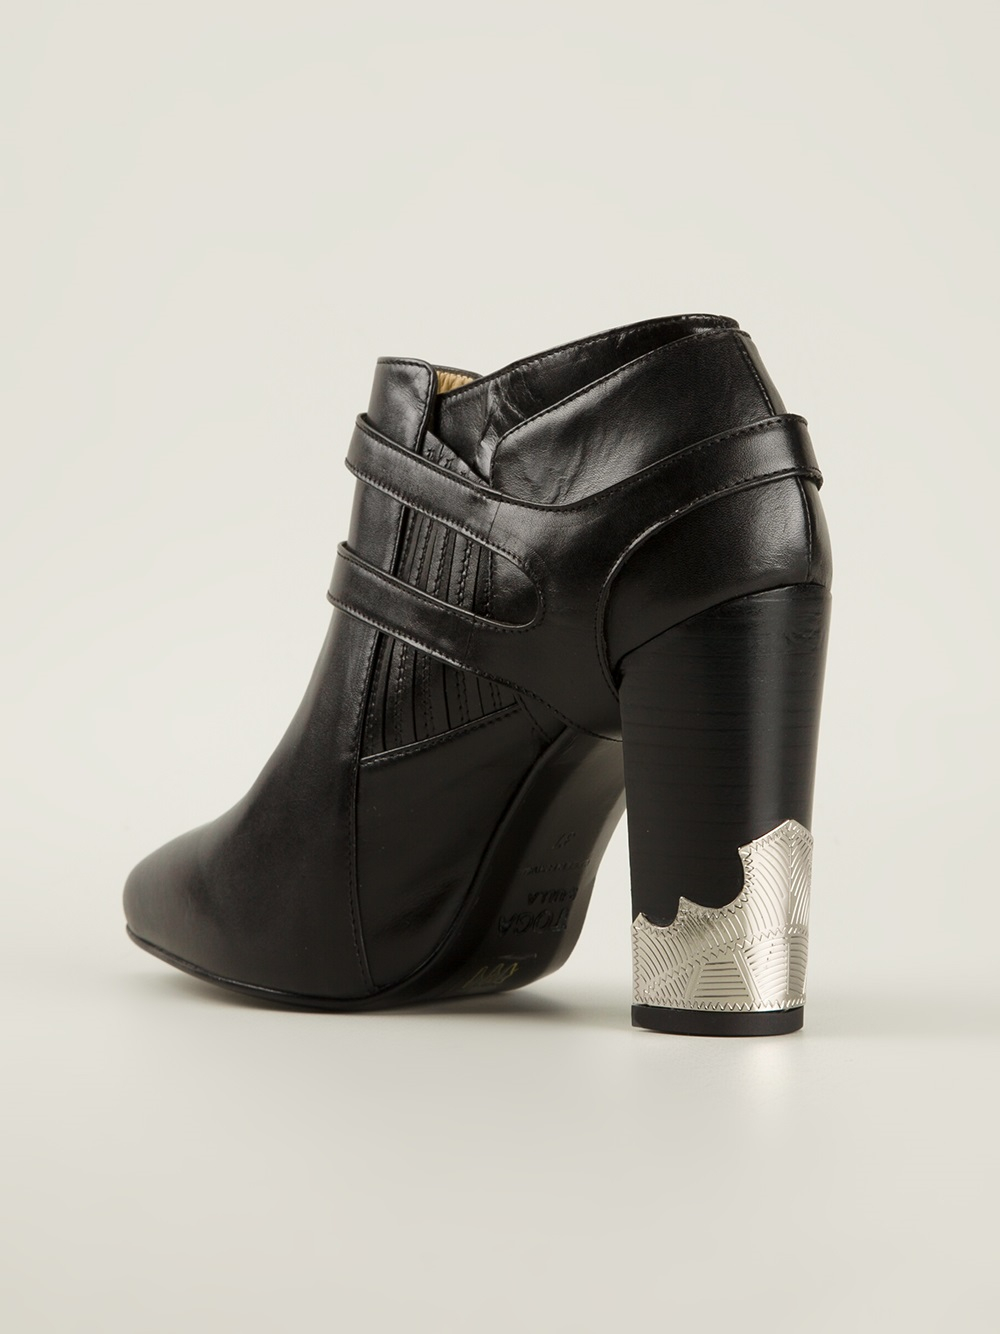 Toga Pulla ankle height buckle boots 2014 new for sale fINDnCZnz